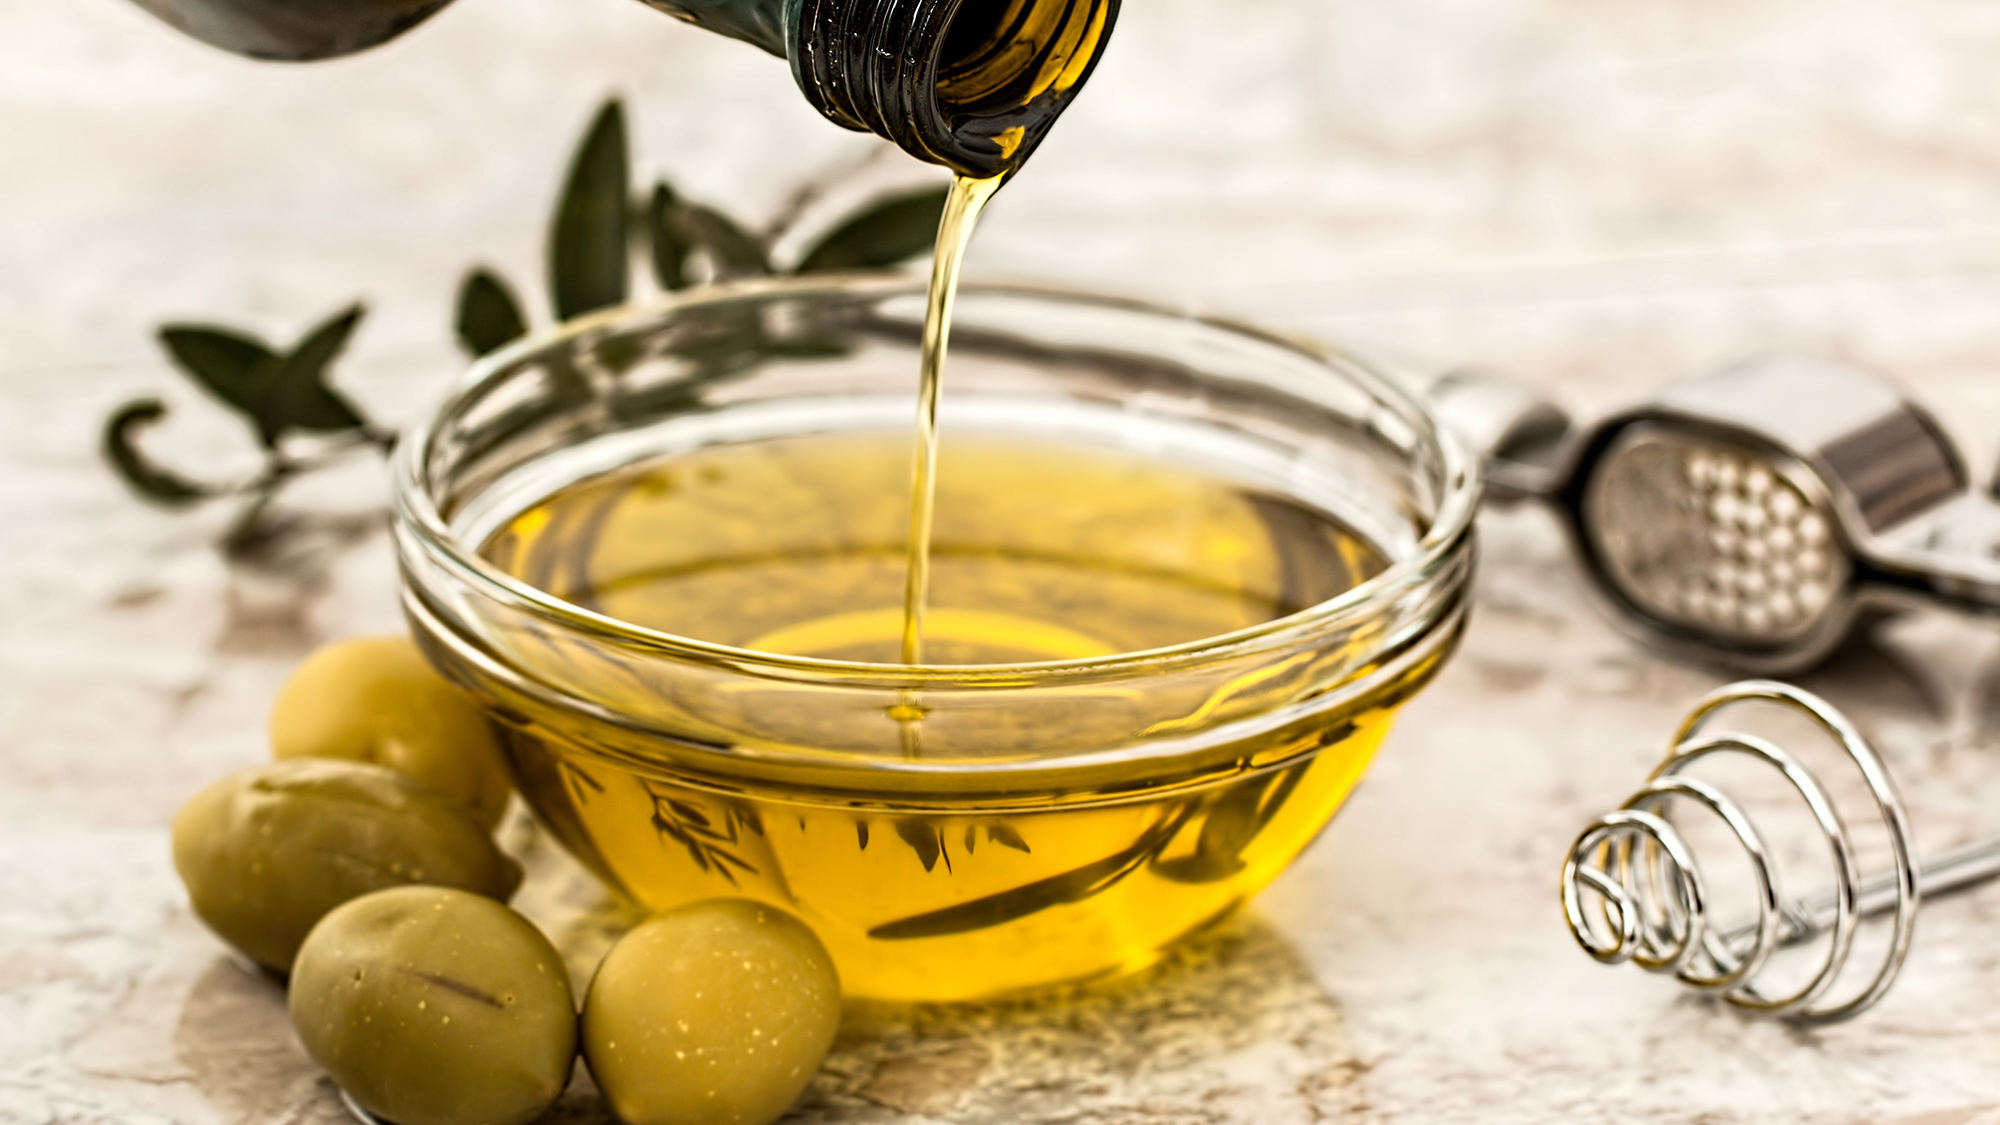 A study carried out by the IMIM confirms that the consumption of two biomolecules found in olive oil can be associated with improved endothelial function. | Picture by Pixabay from Pexels.